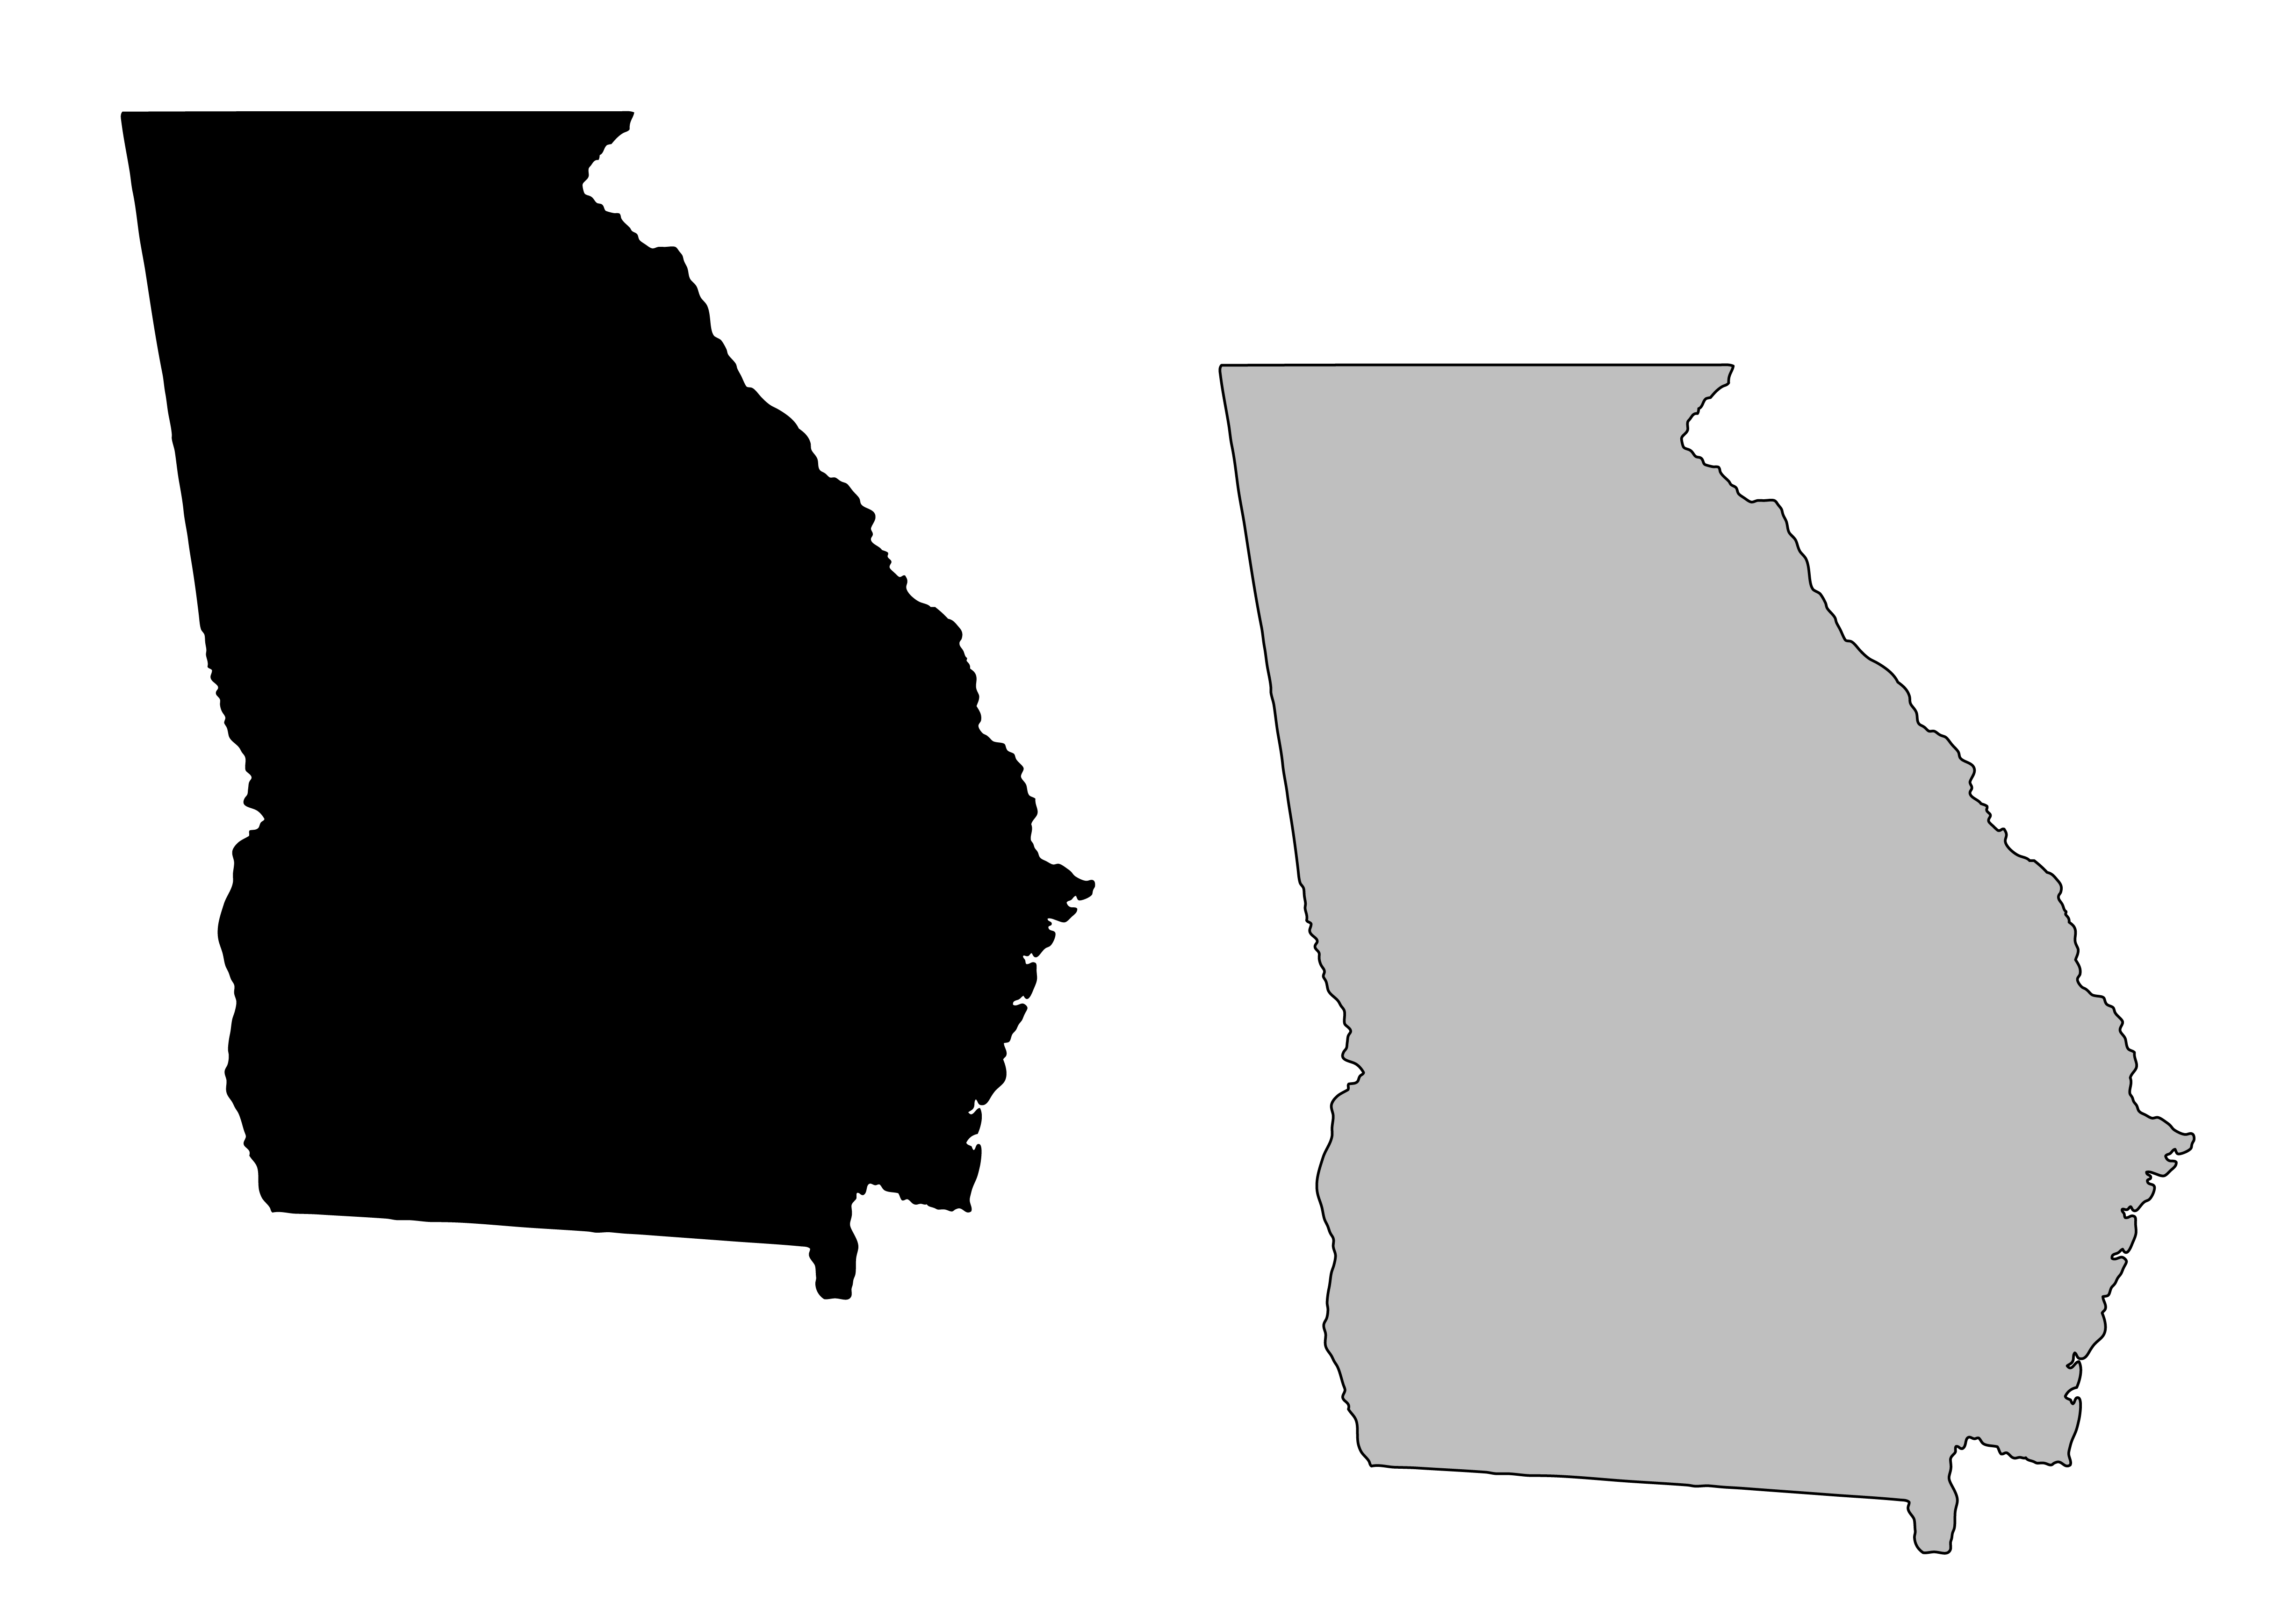 Free Map Of Georgia.State Of Georgia Vector At Getdrawings Com Free For Personal Use